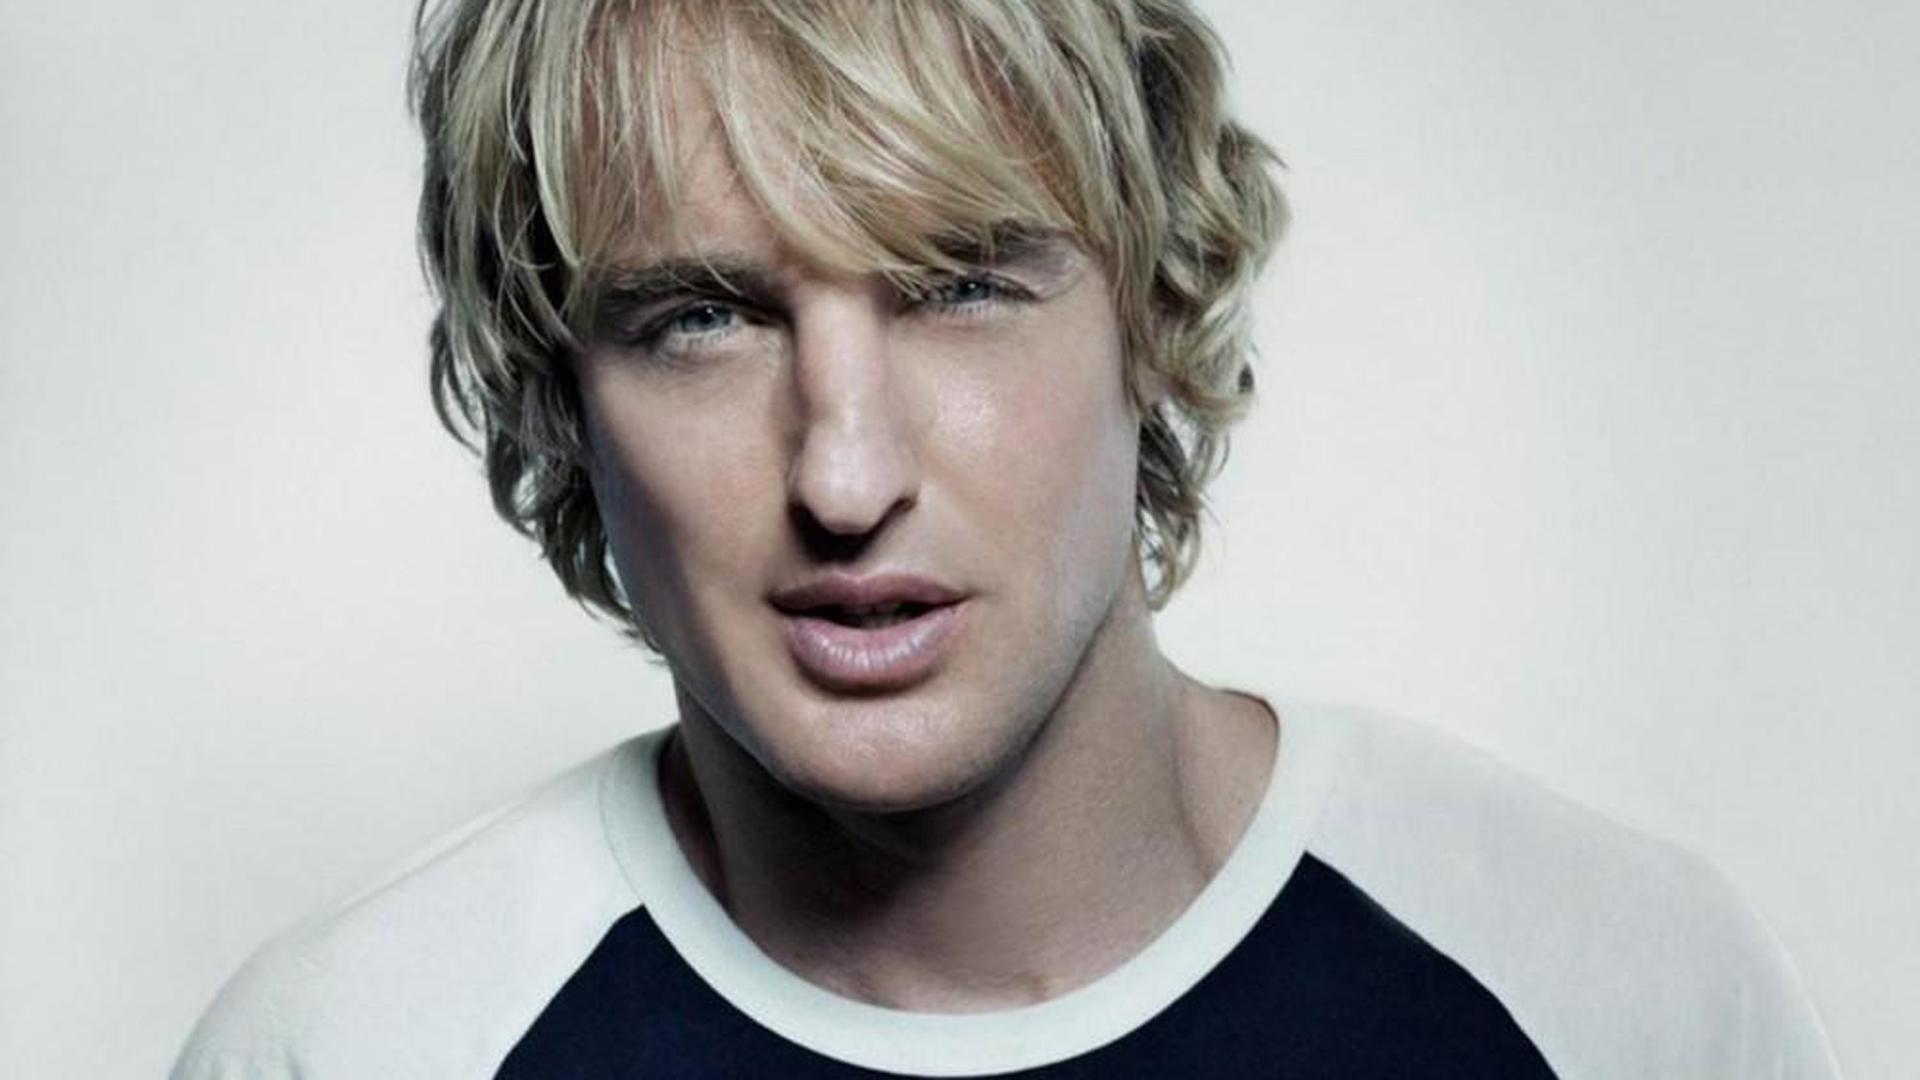 Owen Wilson Wallpapers Images Photos Pictures Backgrounds 1920x1080